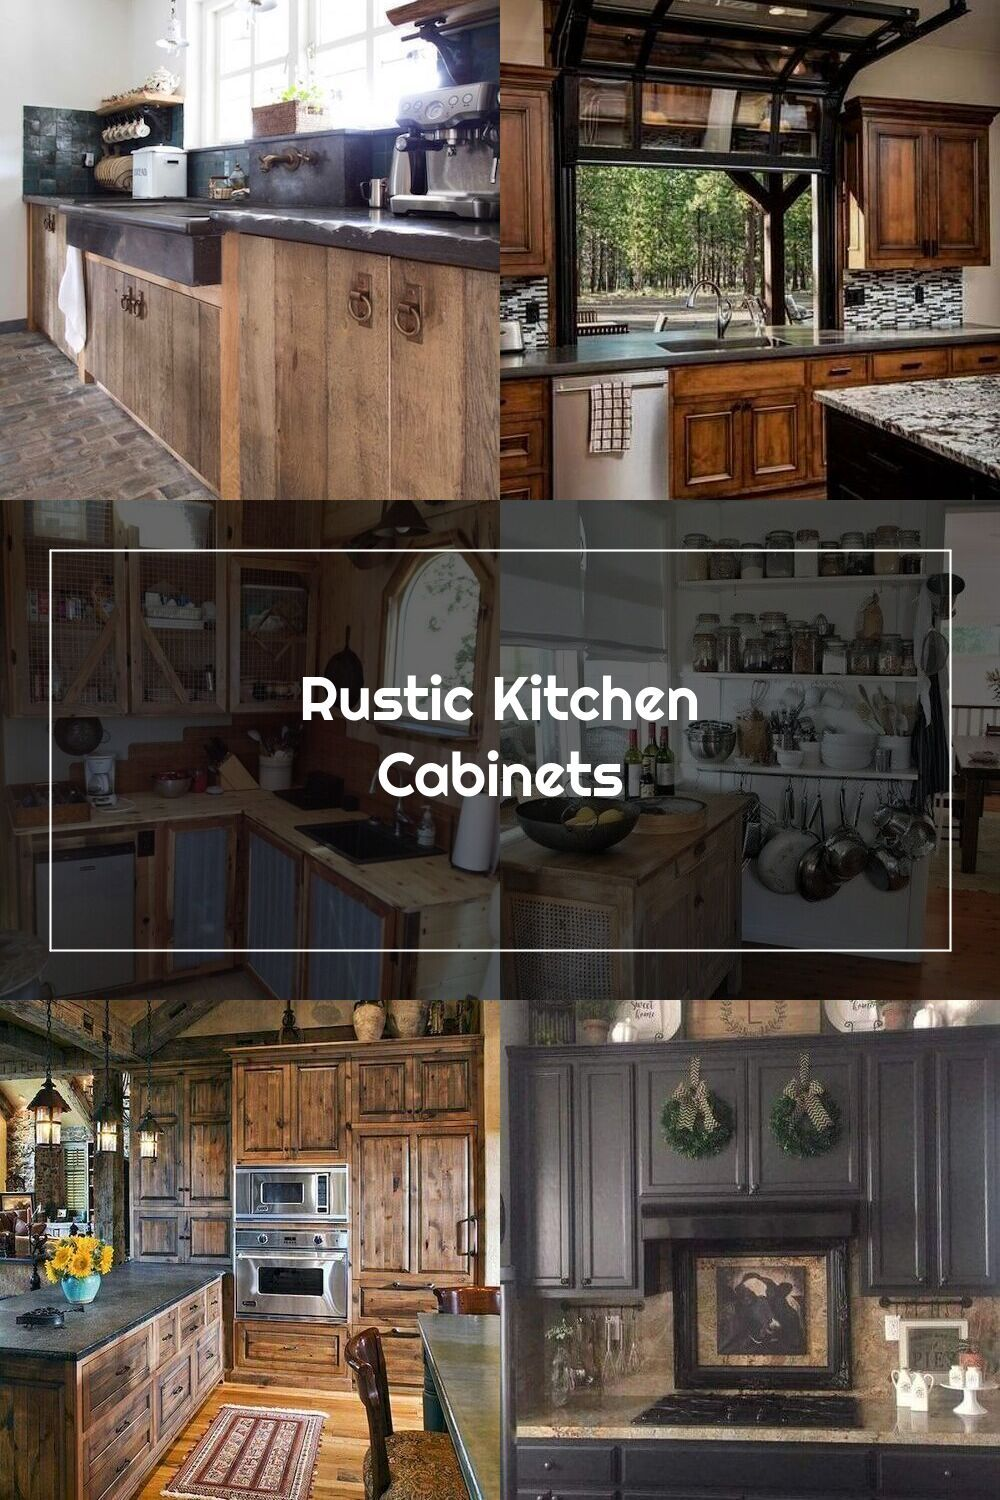 Rustic Kitchen Cabinets Lowes Rustickitchencabinet Rustic Kitchen Rustic Cabinets Wood Kitchen Cabinets